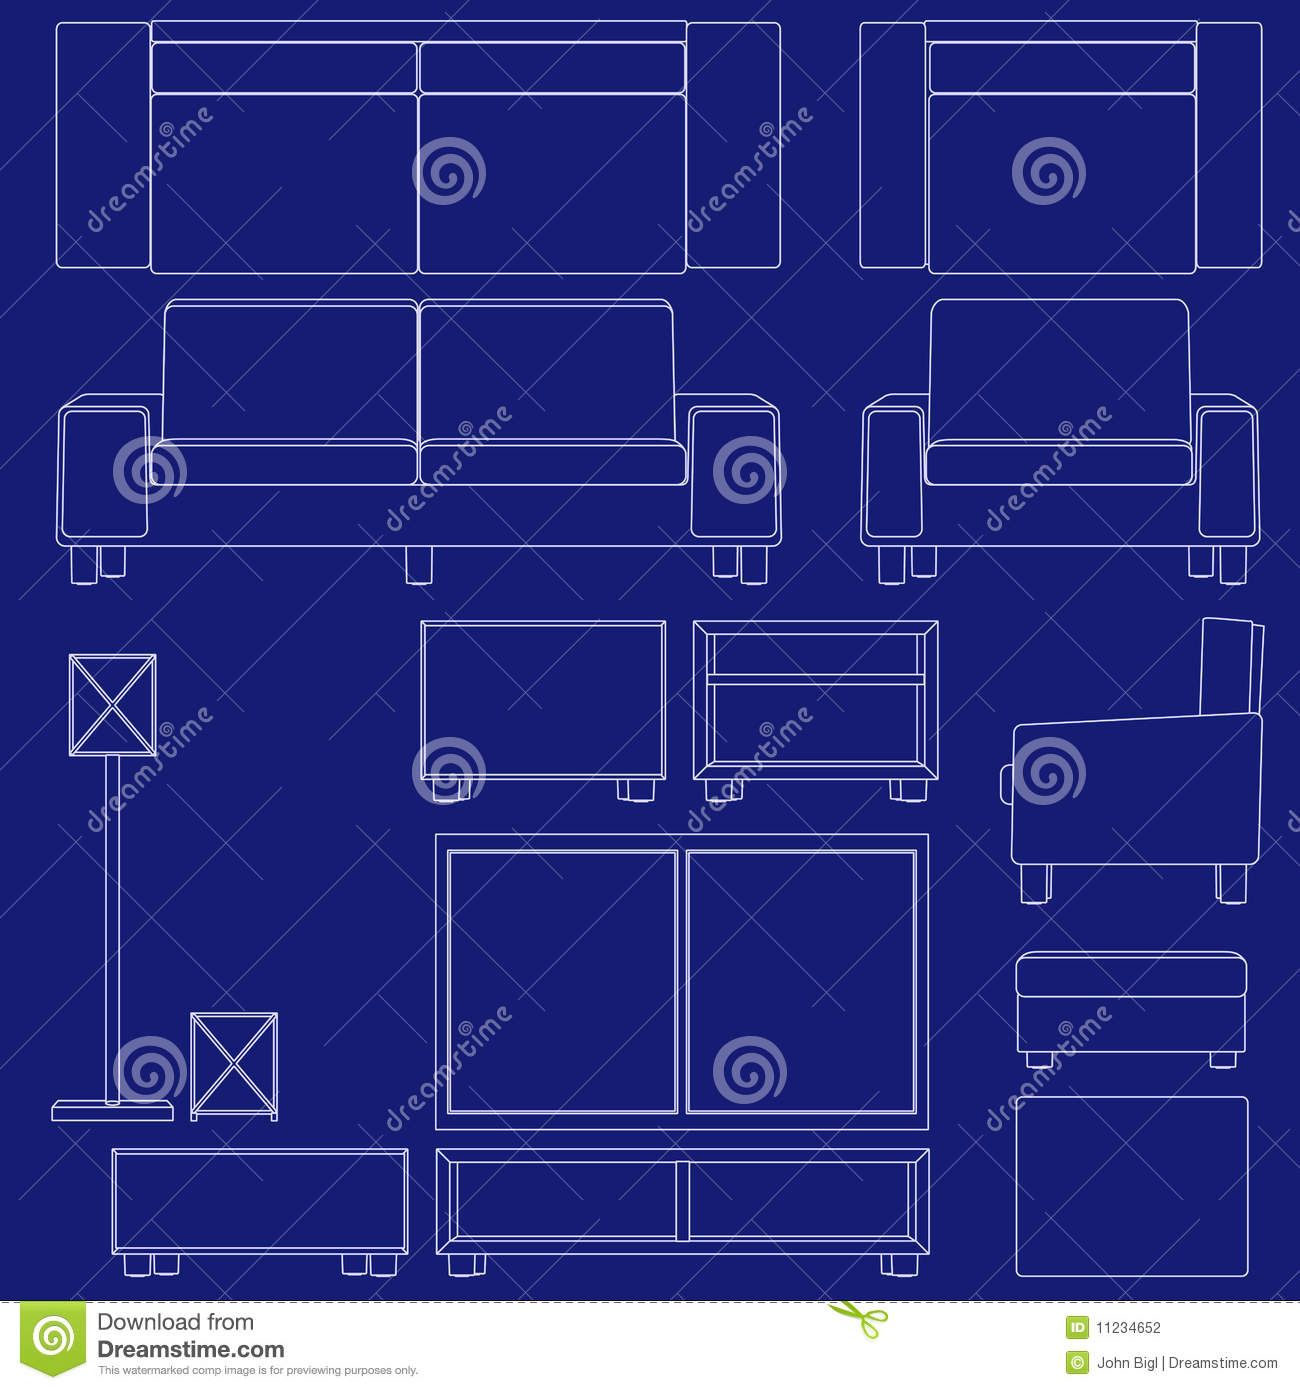 Blueprint living room furniture stock vector illustration of couch blueprint living room furniture malvernweather